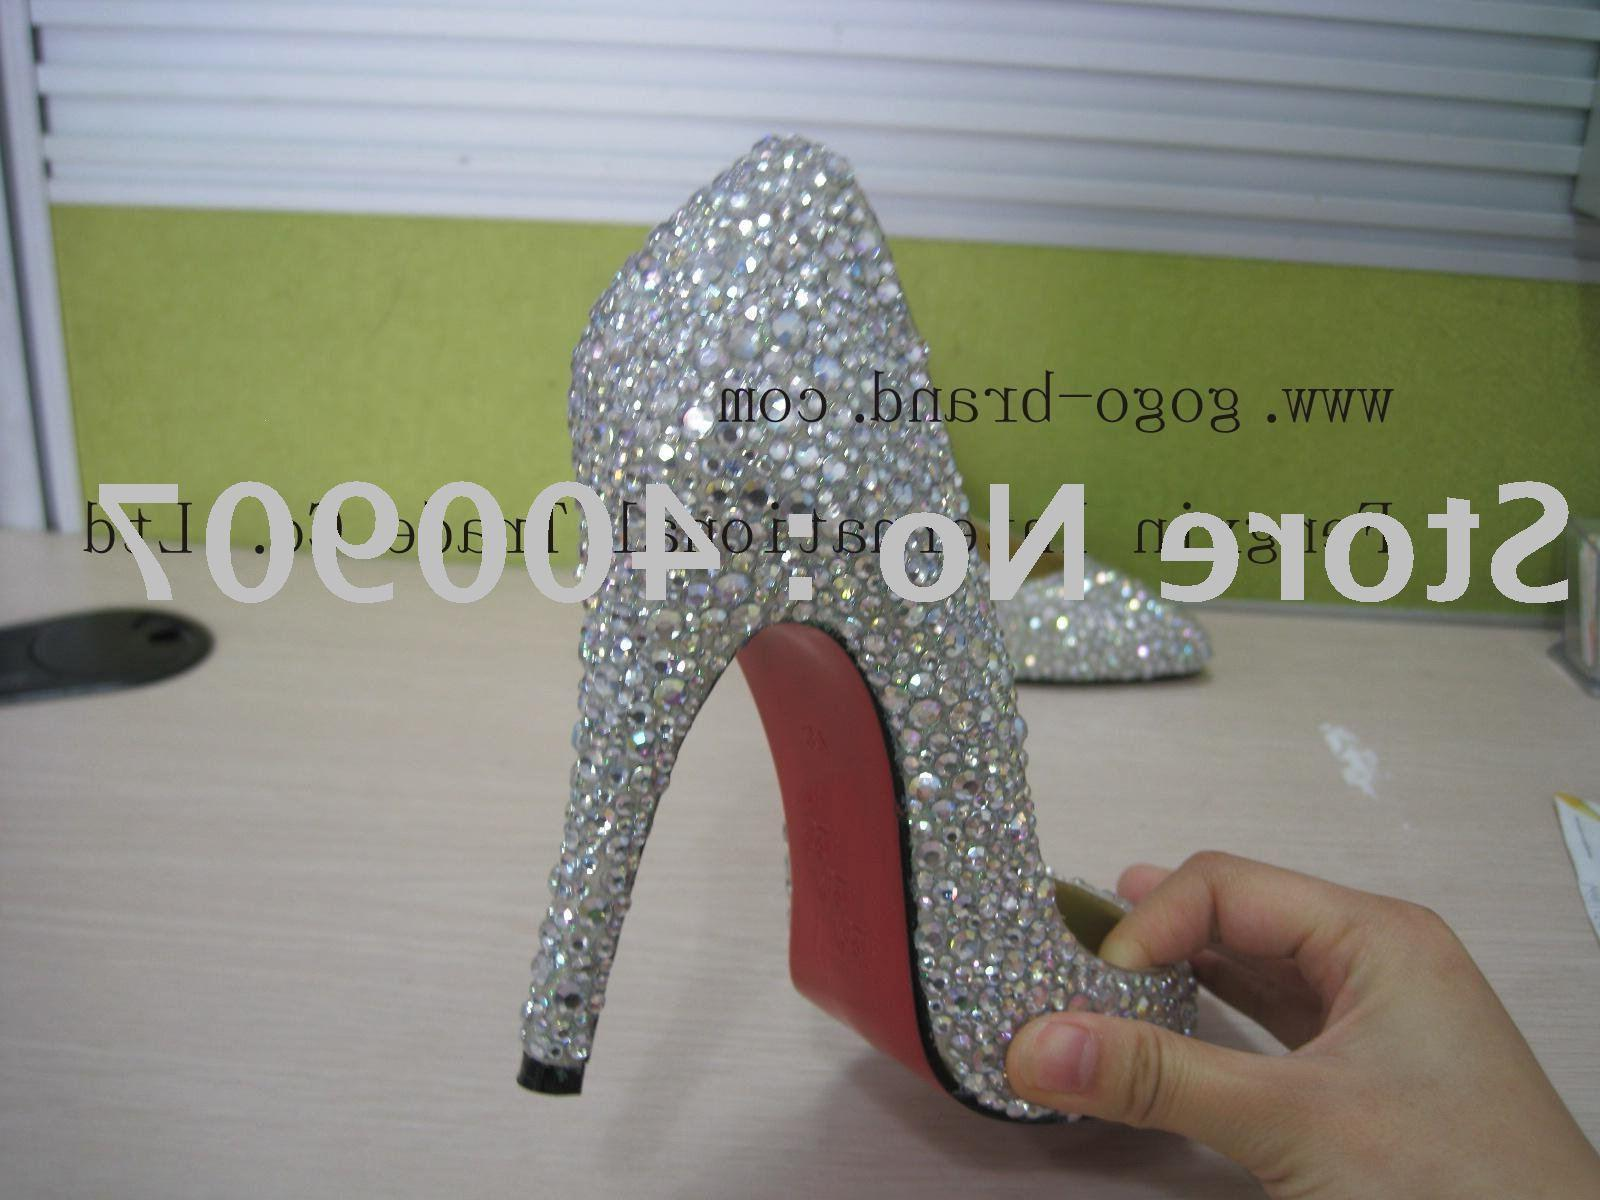 Buy Bridal shoes, elegant bridal shoes, wedding shoes, Crystal high heel